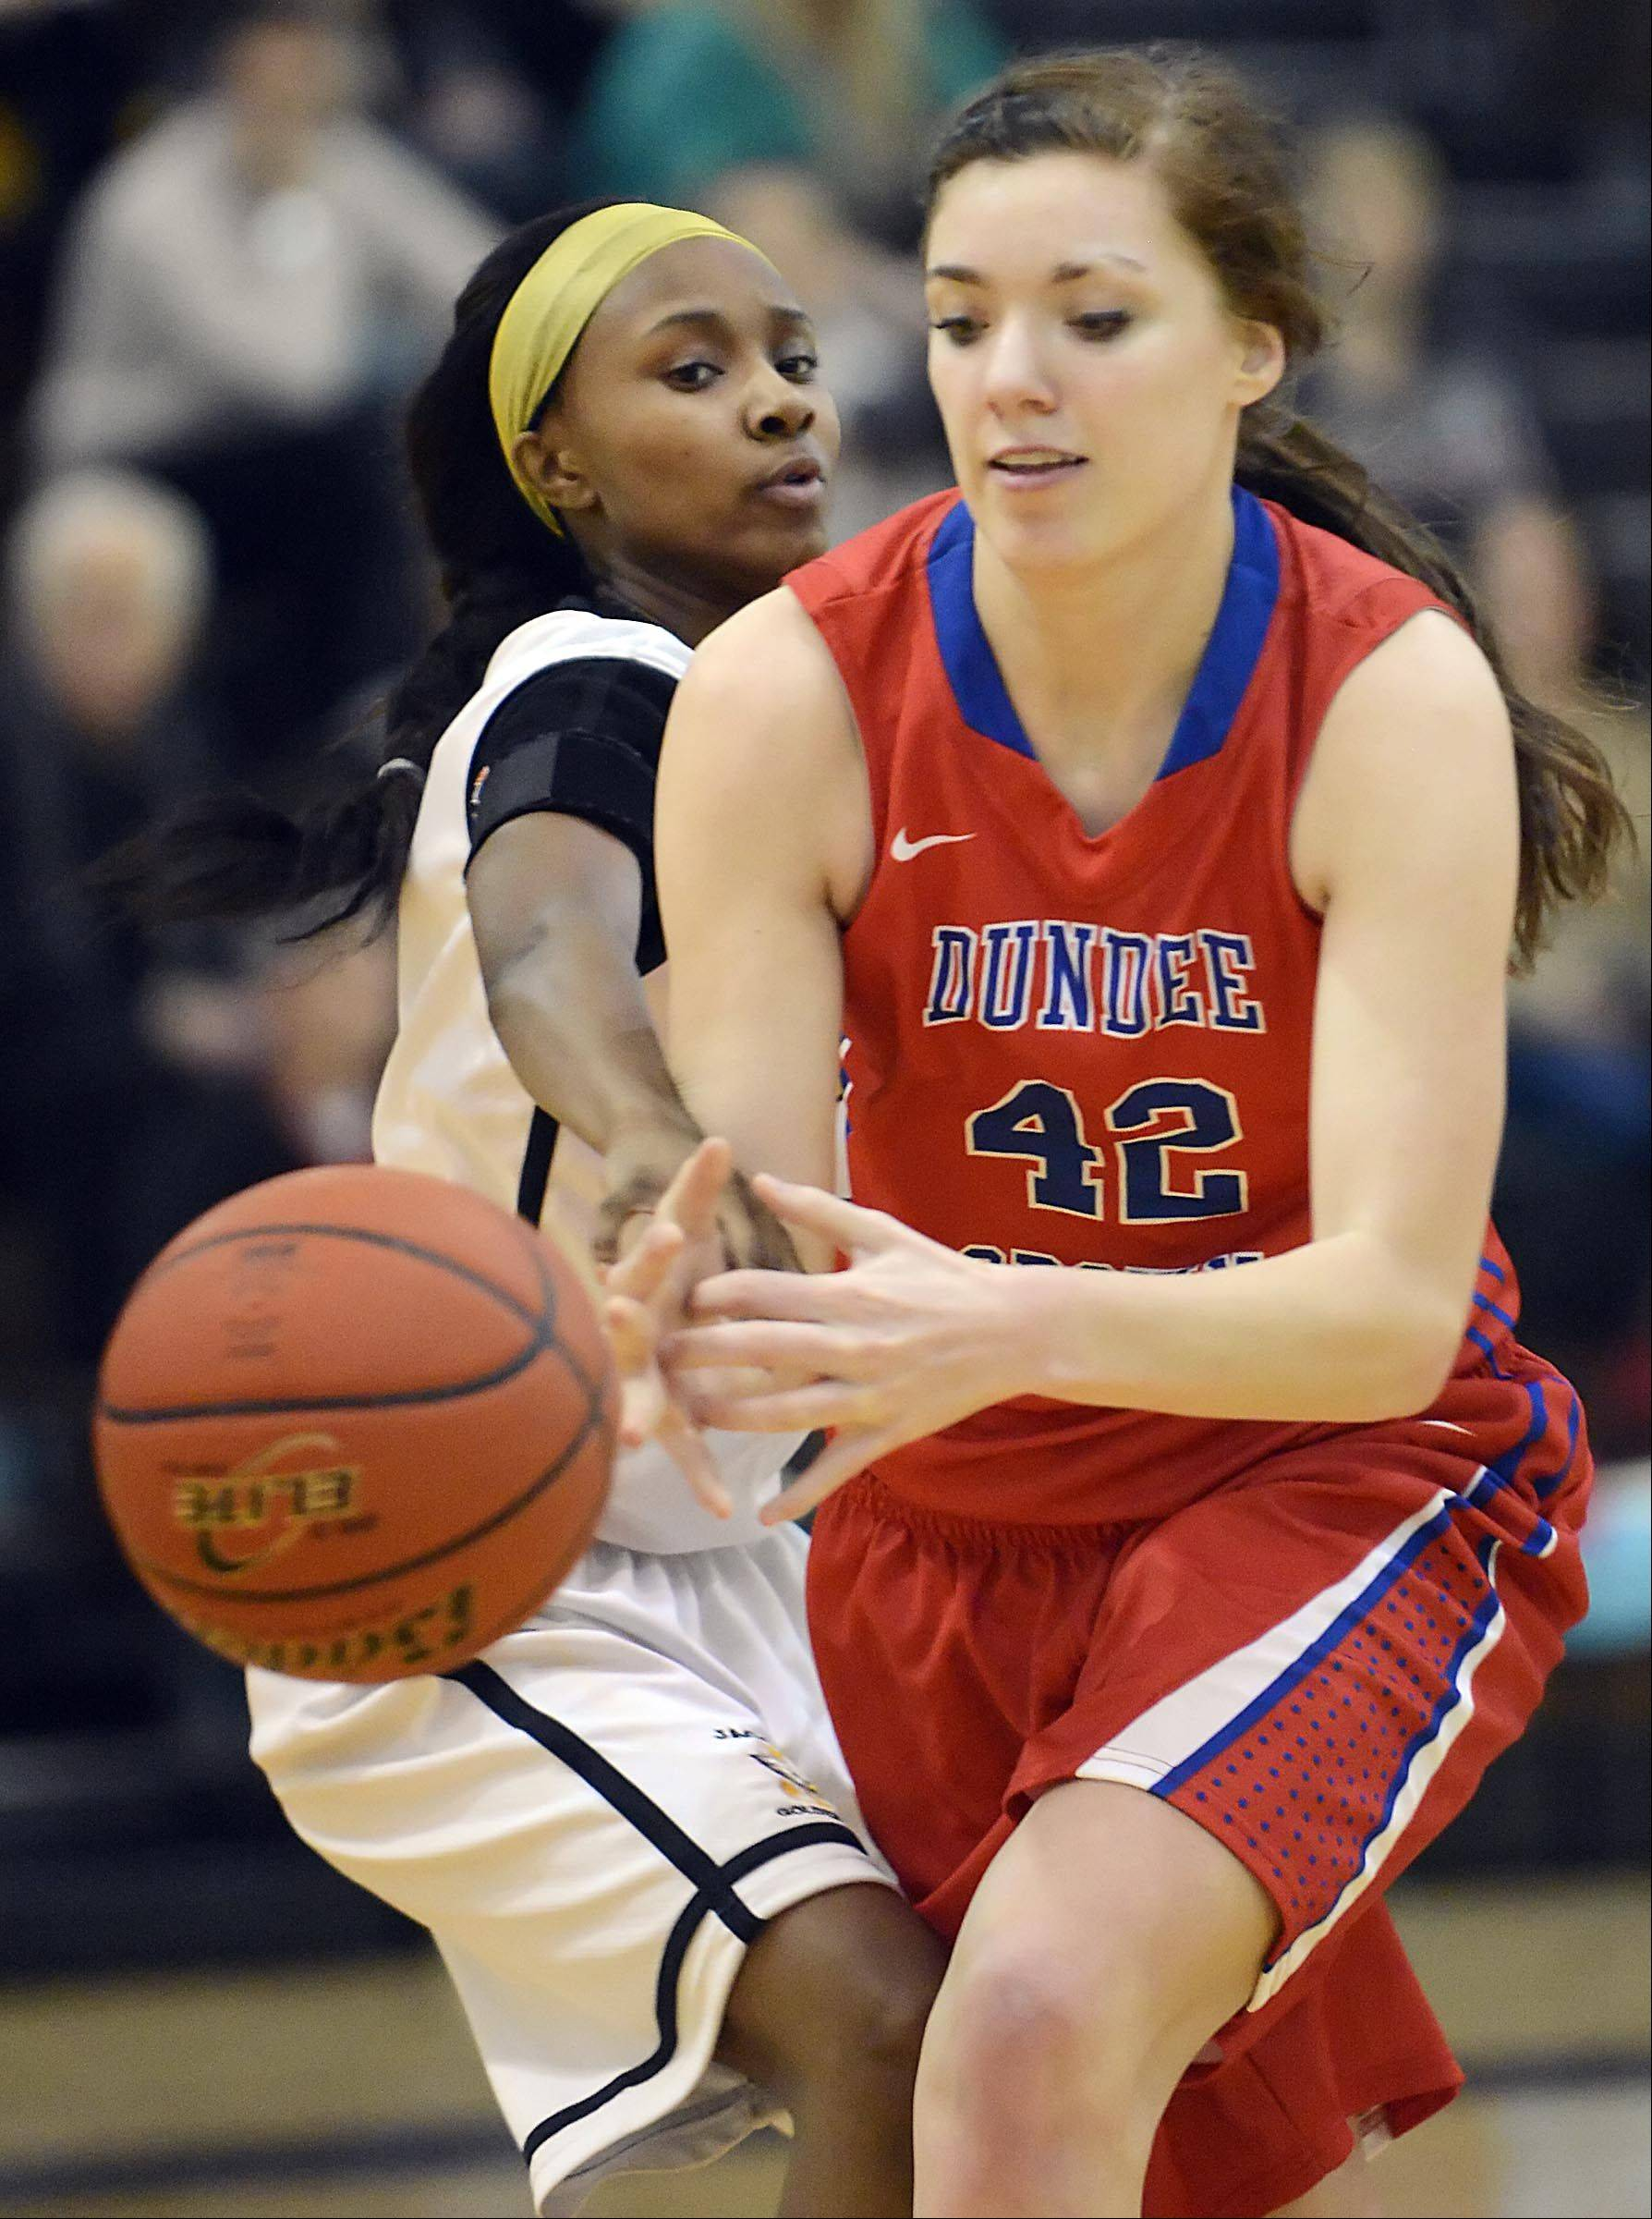 Jacobs' Glenita Williams knocks the ball from Dundee-Crown's Emily Michalski.